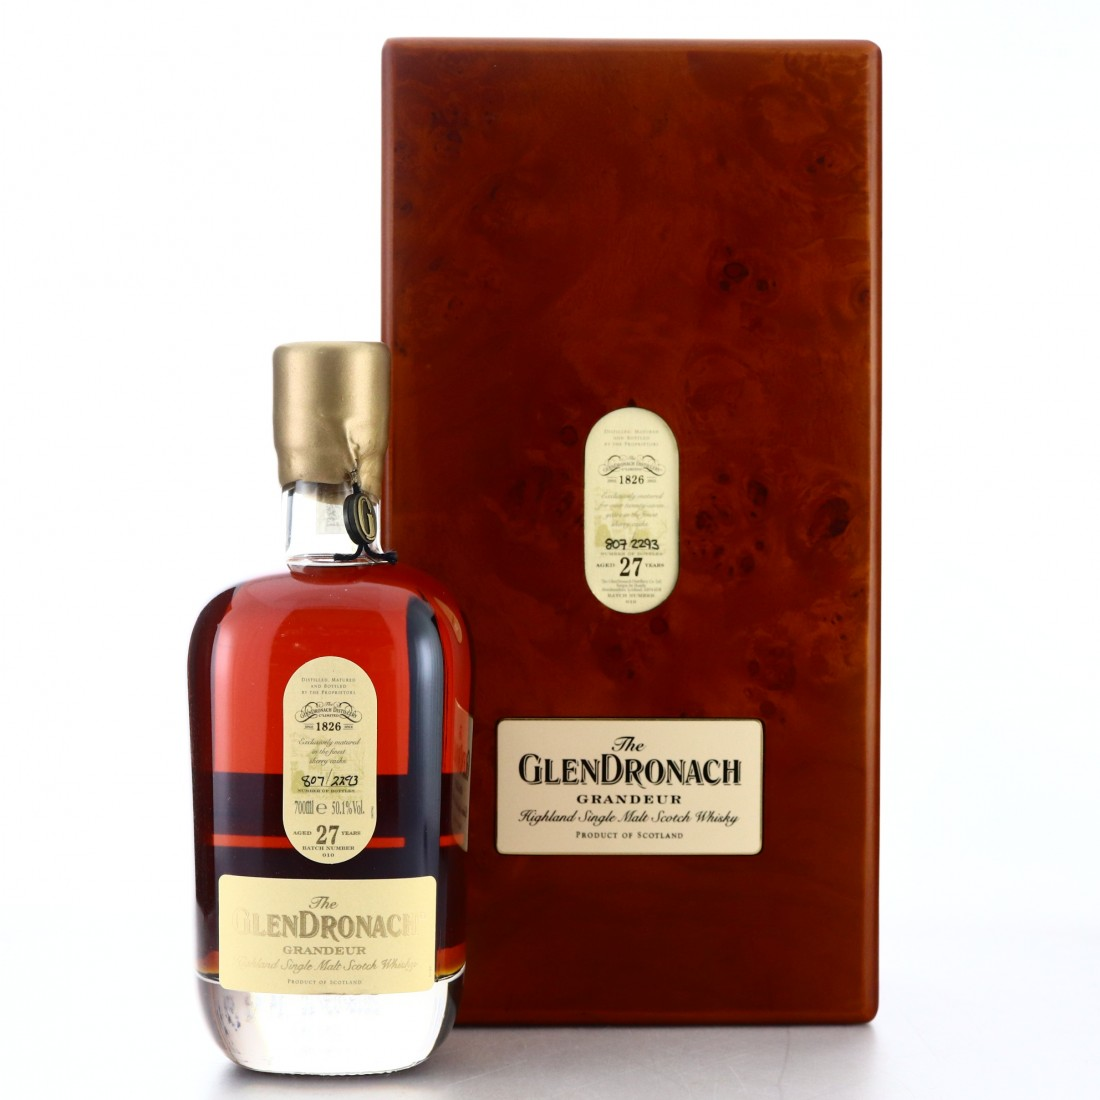 Glendronach Grandeur 27 Year Old Batch #010